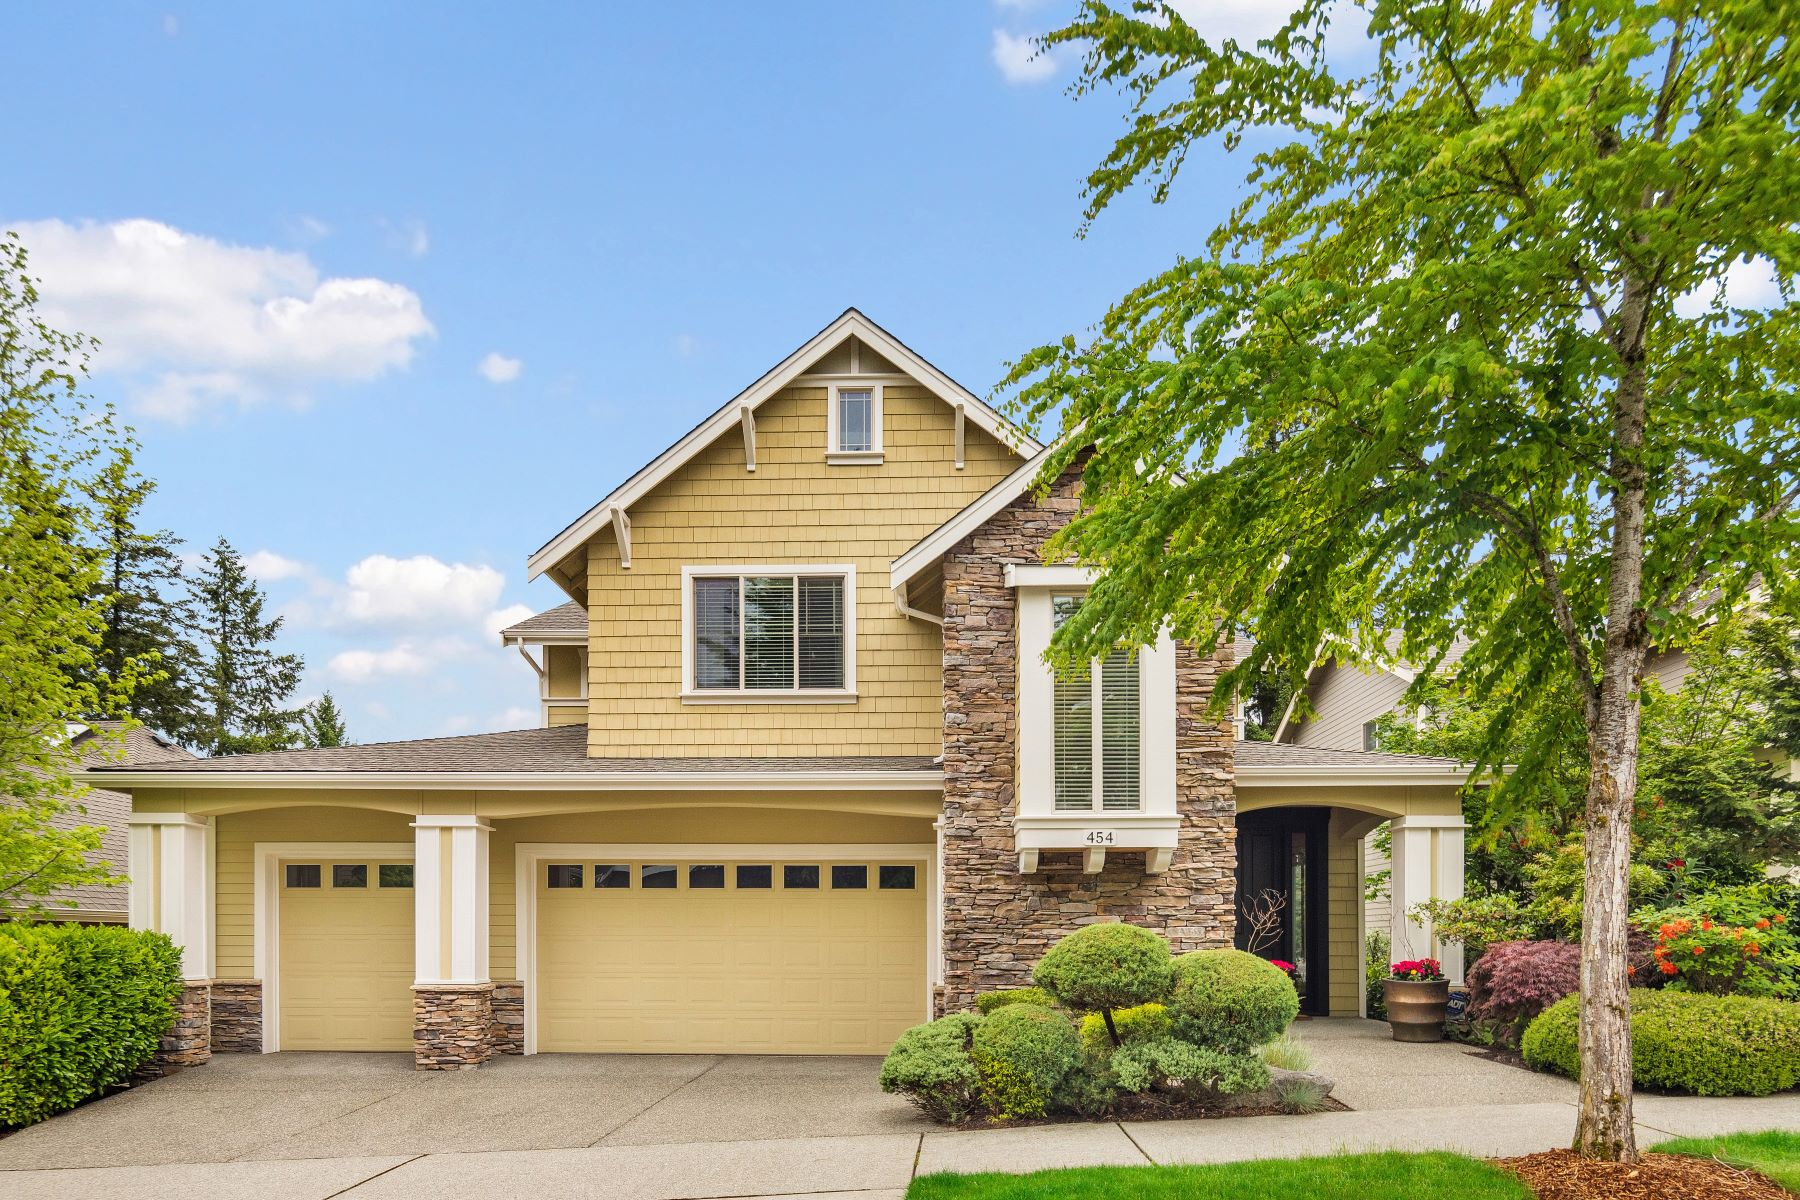 Single Family Homes for Sale at Tranquil Talus Living 454 Wilderness Peak Dr NW Issaquah, Washington 98027 United States